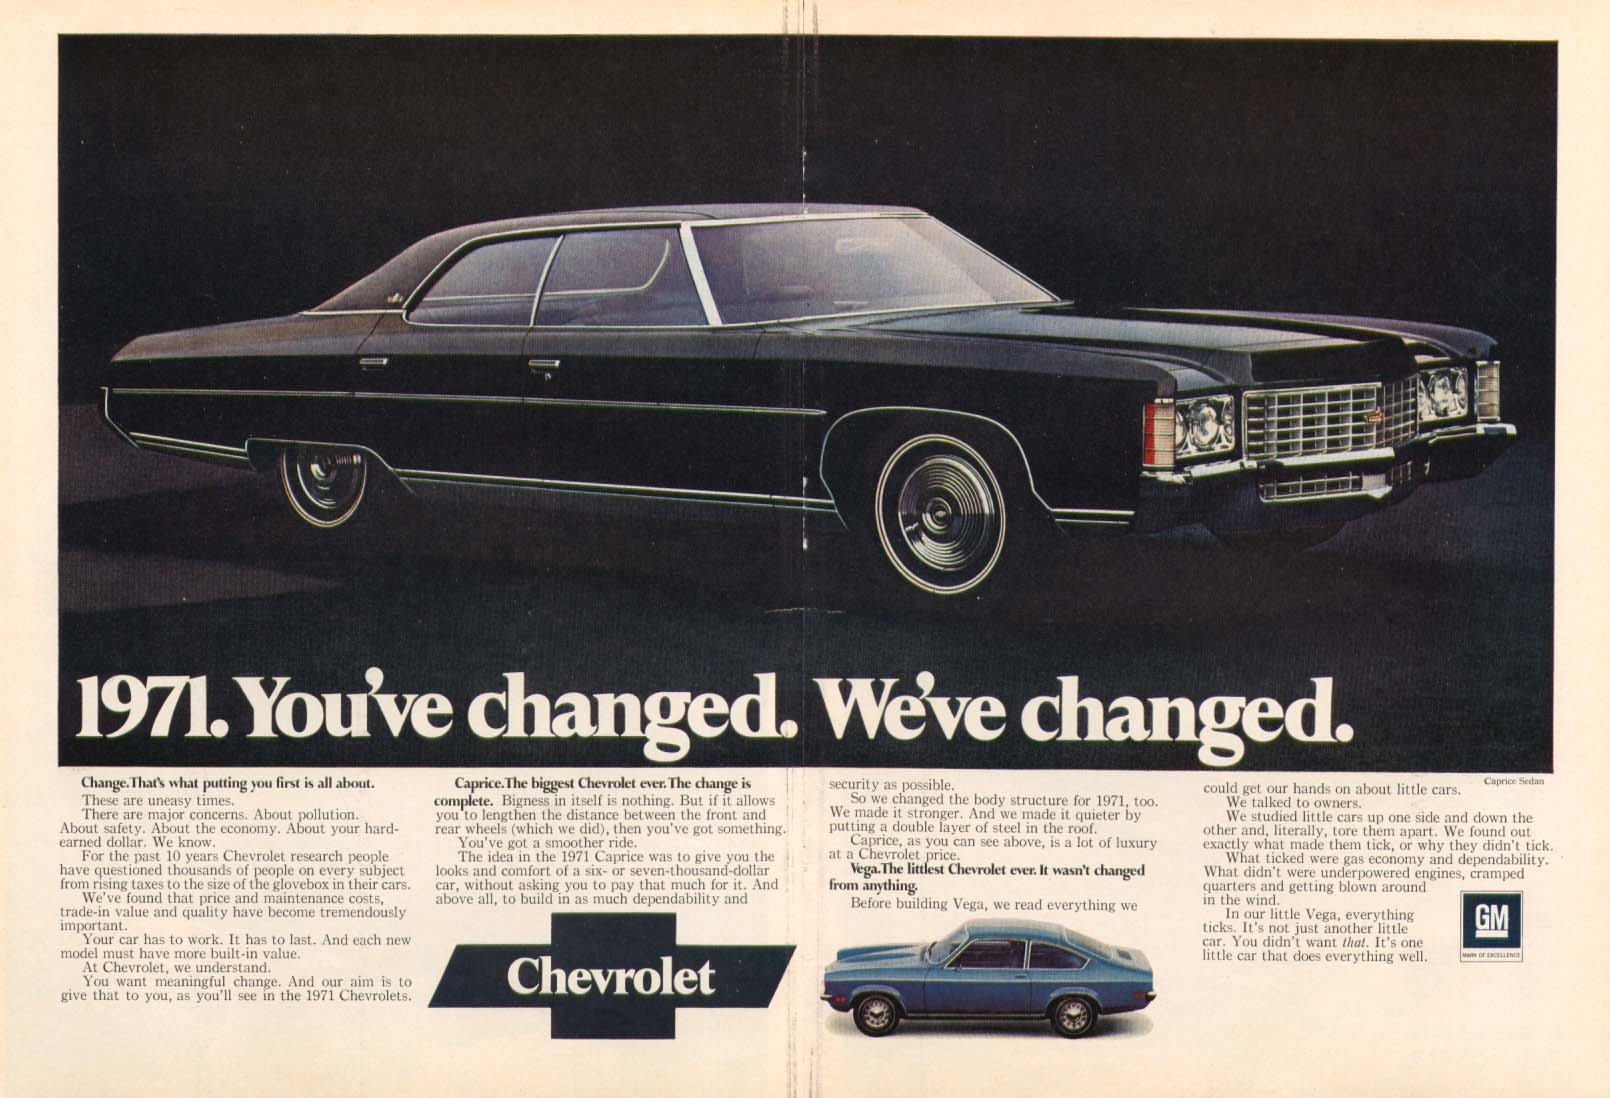 Chevrolet Caprice You've changed We've changed ad 1971